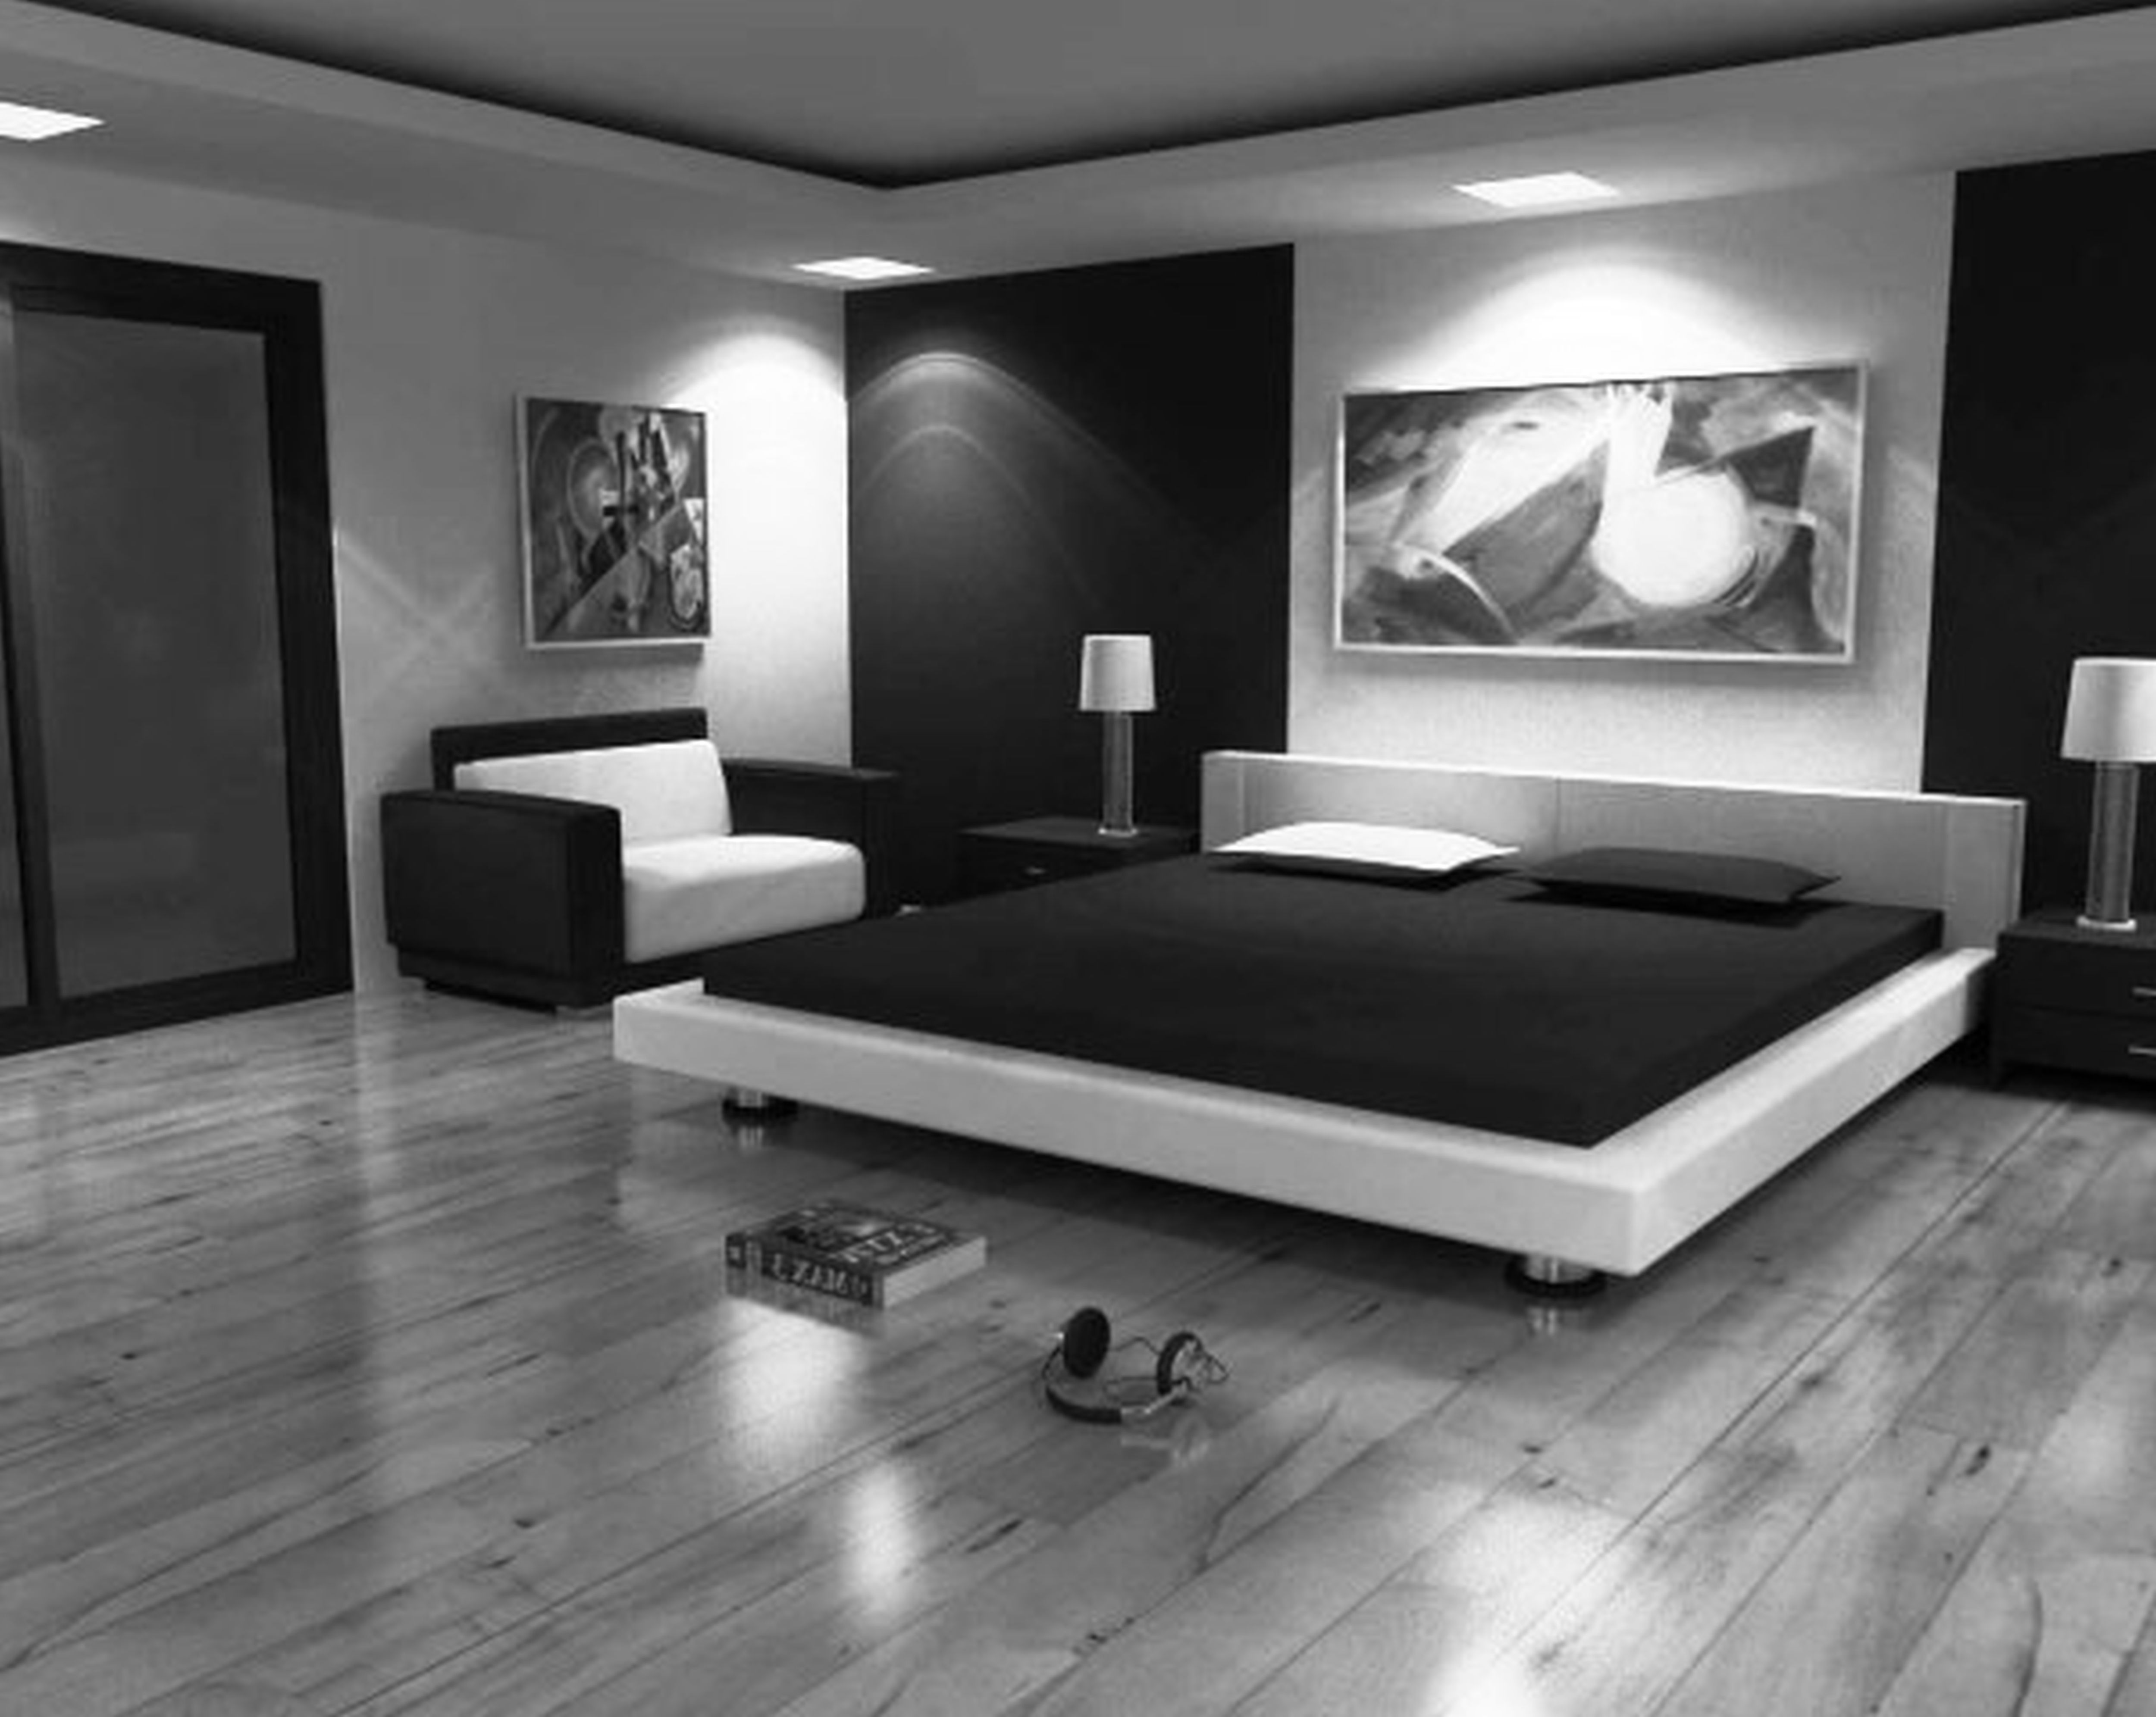 Black And White Bedroom With Black And White Bedroom 2016 Decorating Ideas Jpg 5000 3983 Schlafzimmer Design Zimmer Wohnung